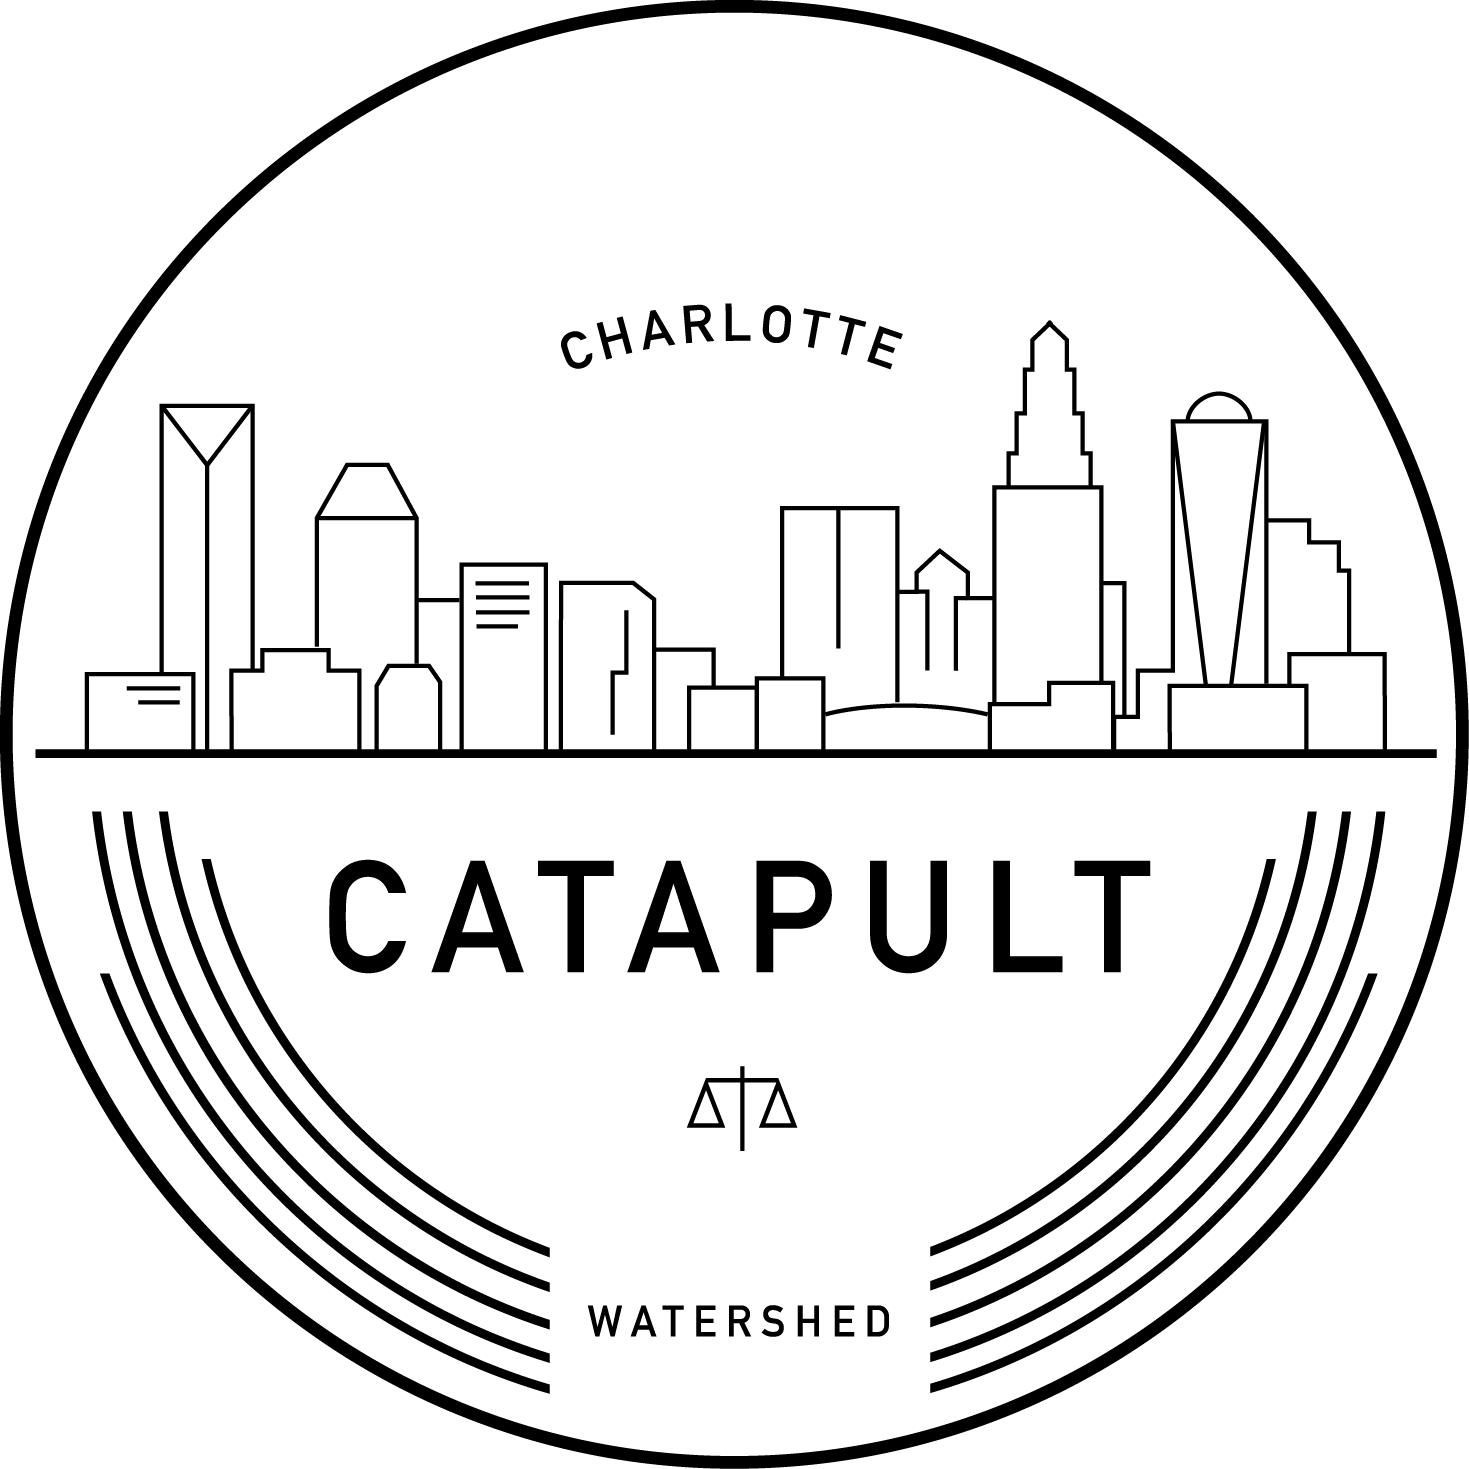 CatapultLogo_black.png